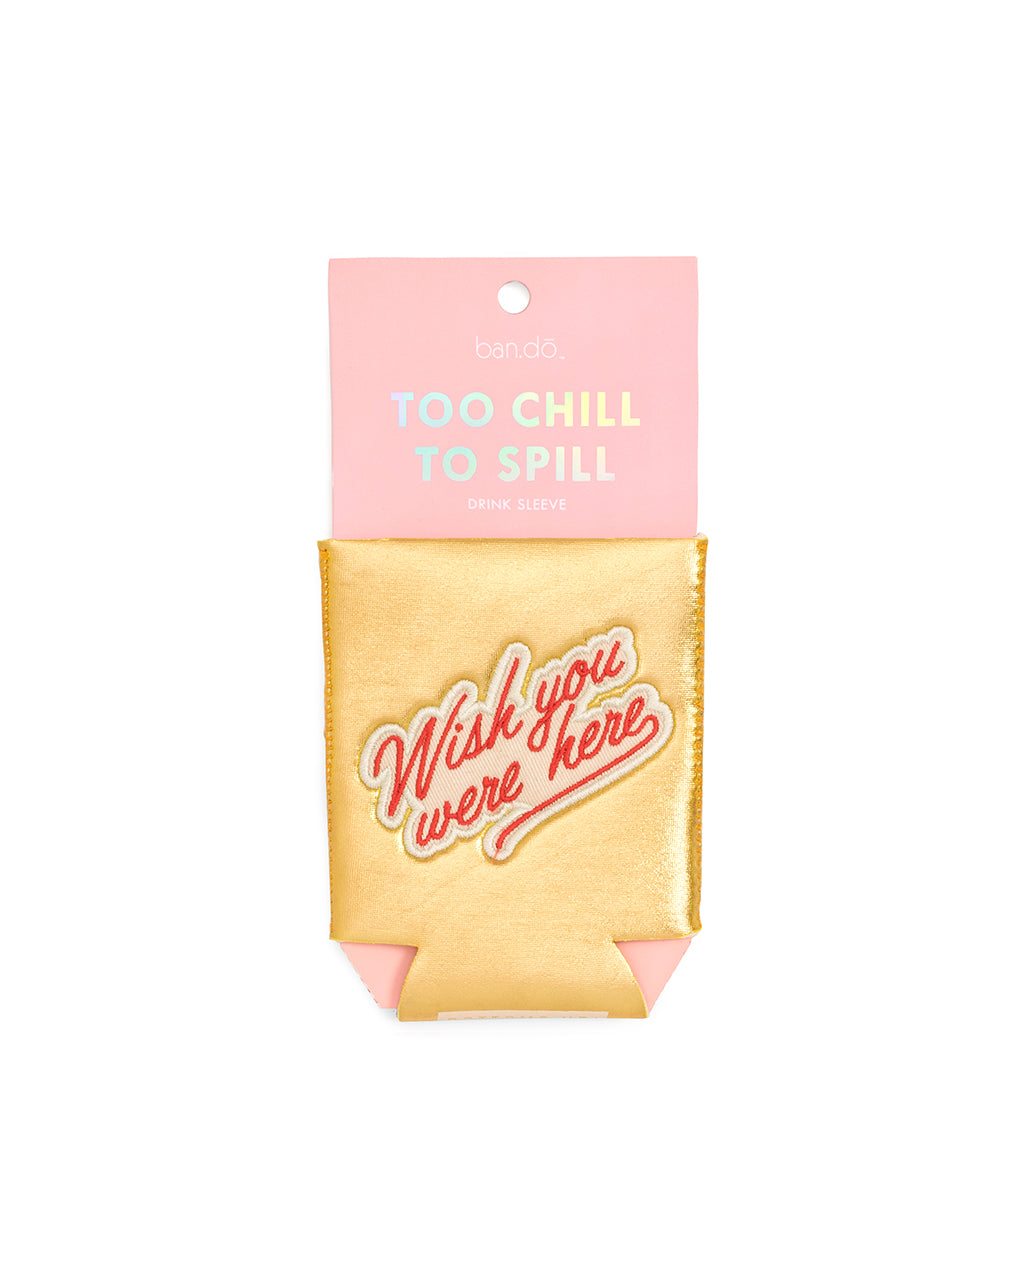 too chill to spill drink sleeve - wish you were here